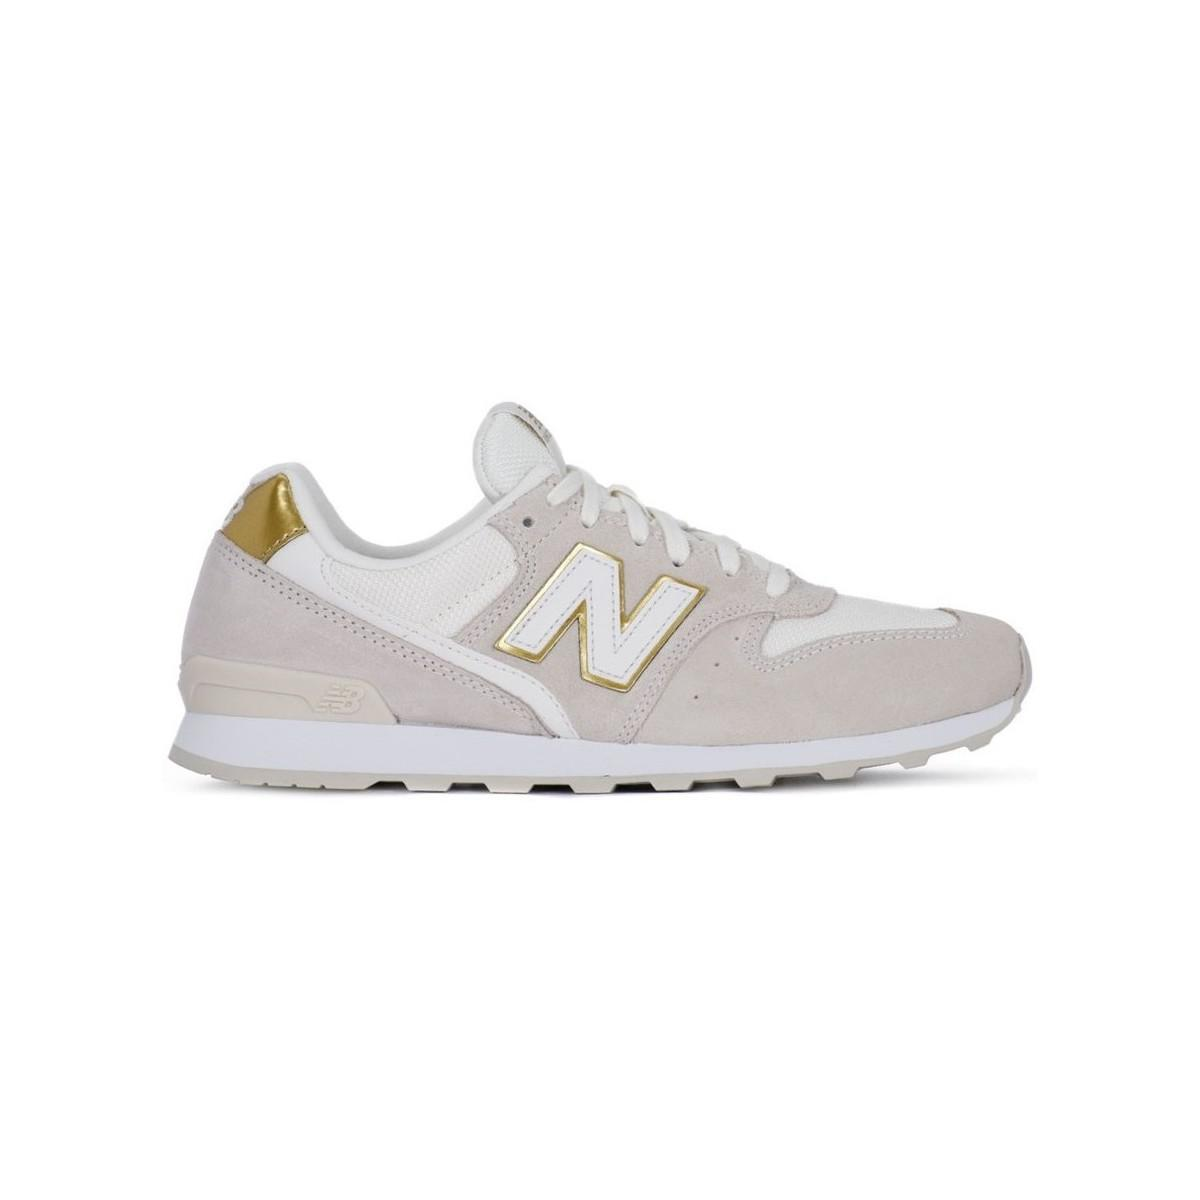 Lyst trainers New 996 Women's Pink Shoes In Balance vSS1nqw0